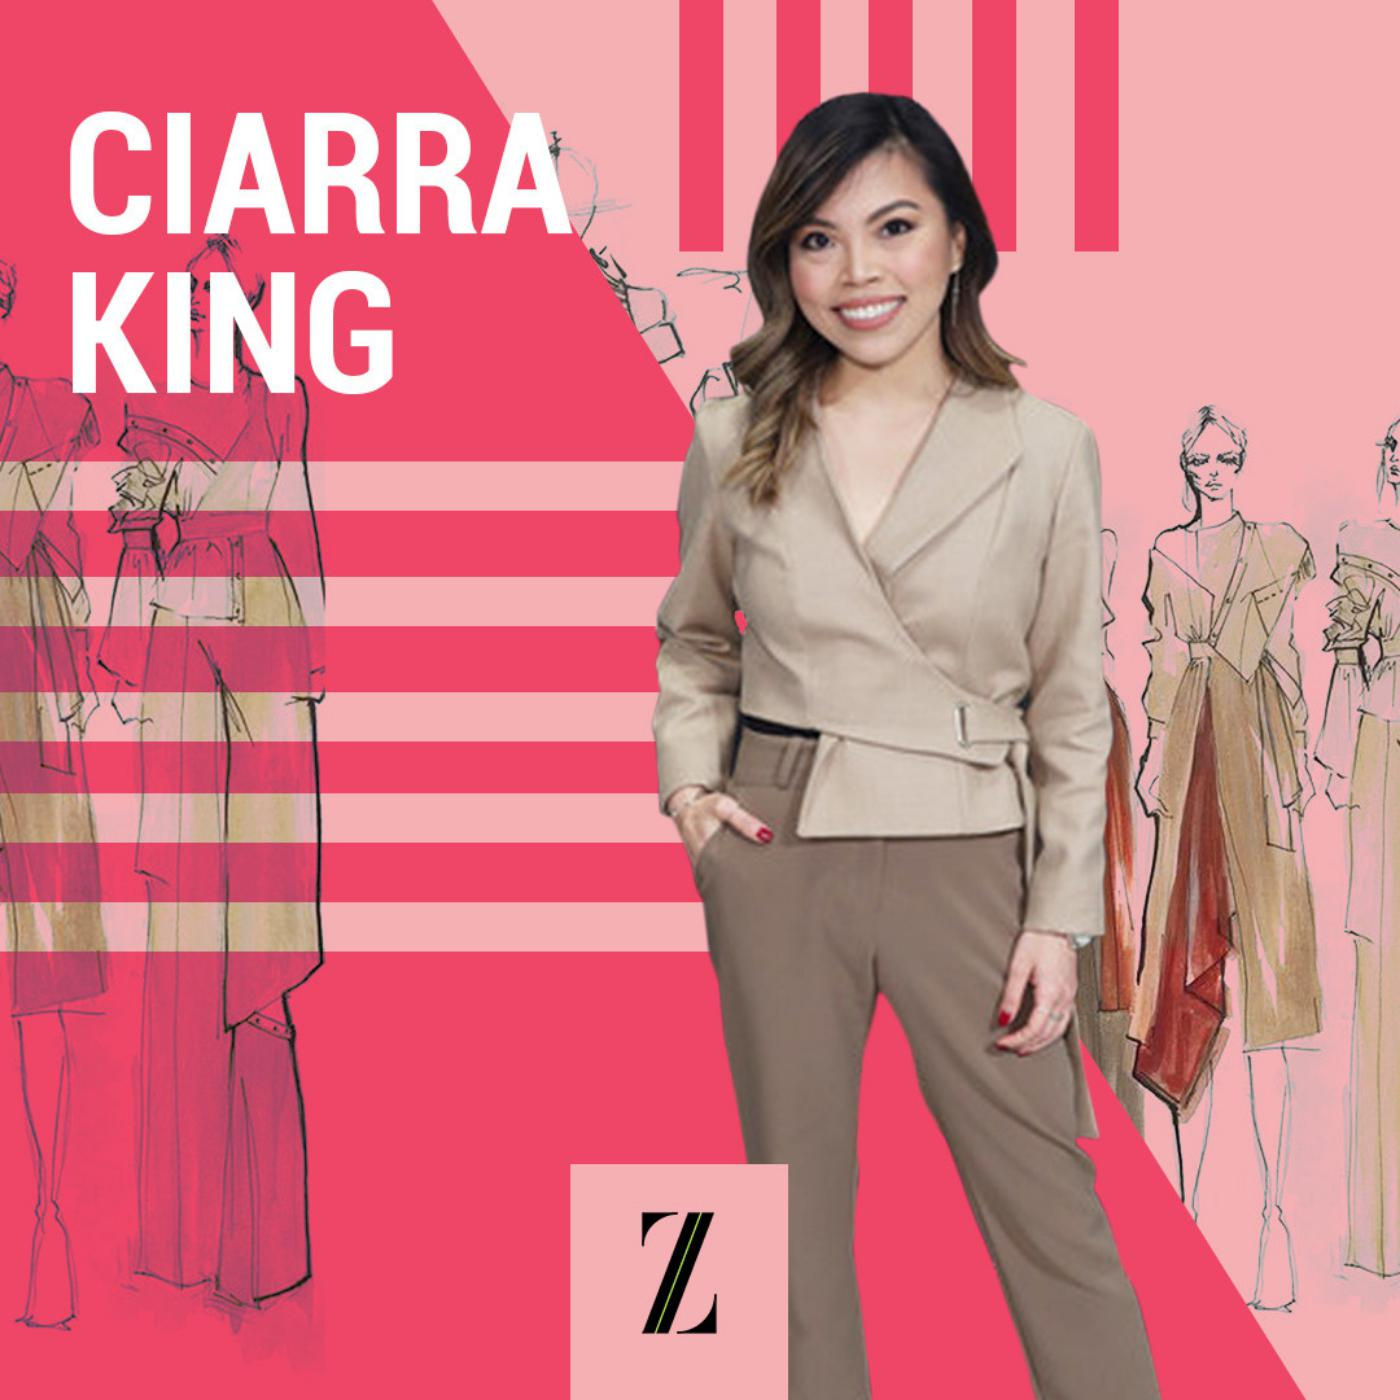 ZINE TALK Podcast: CIARRA KING / ZINE BY MIKARA